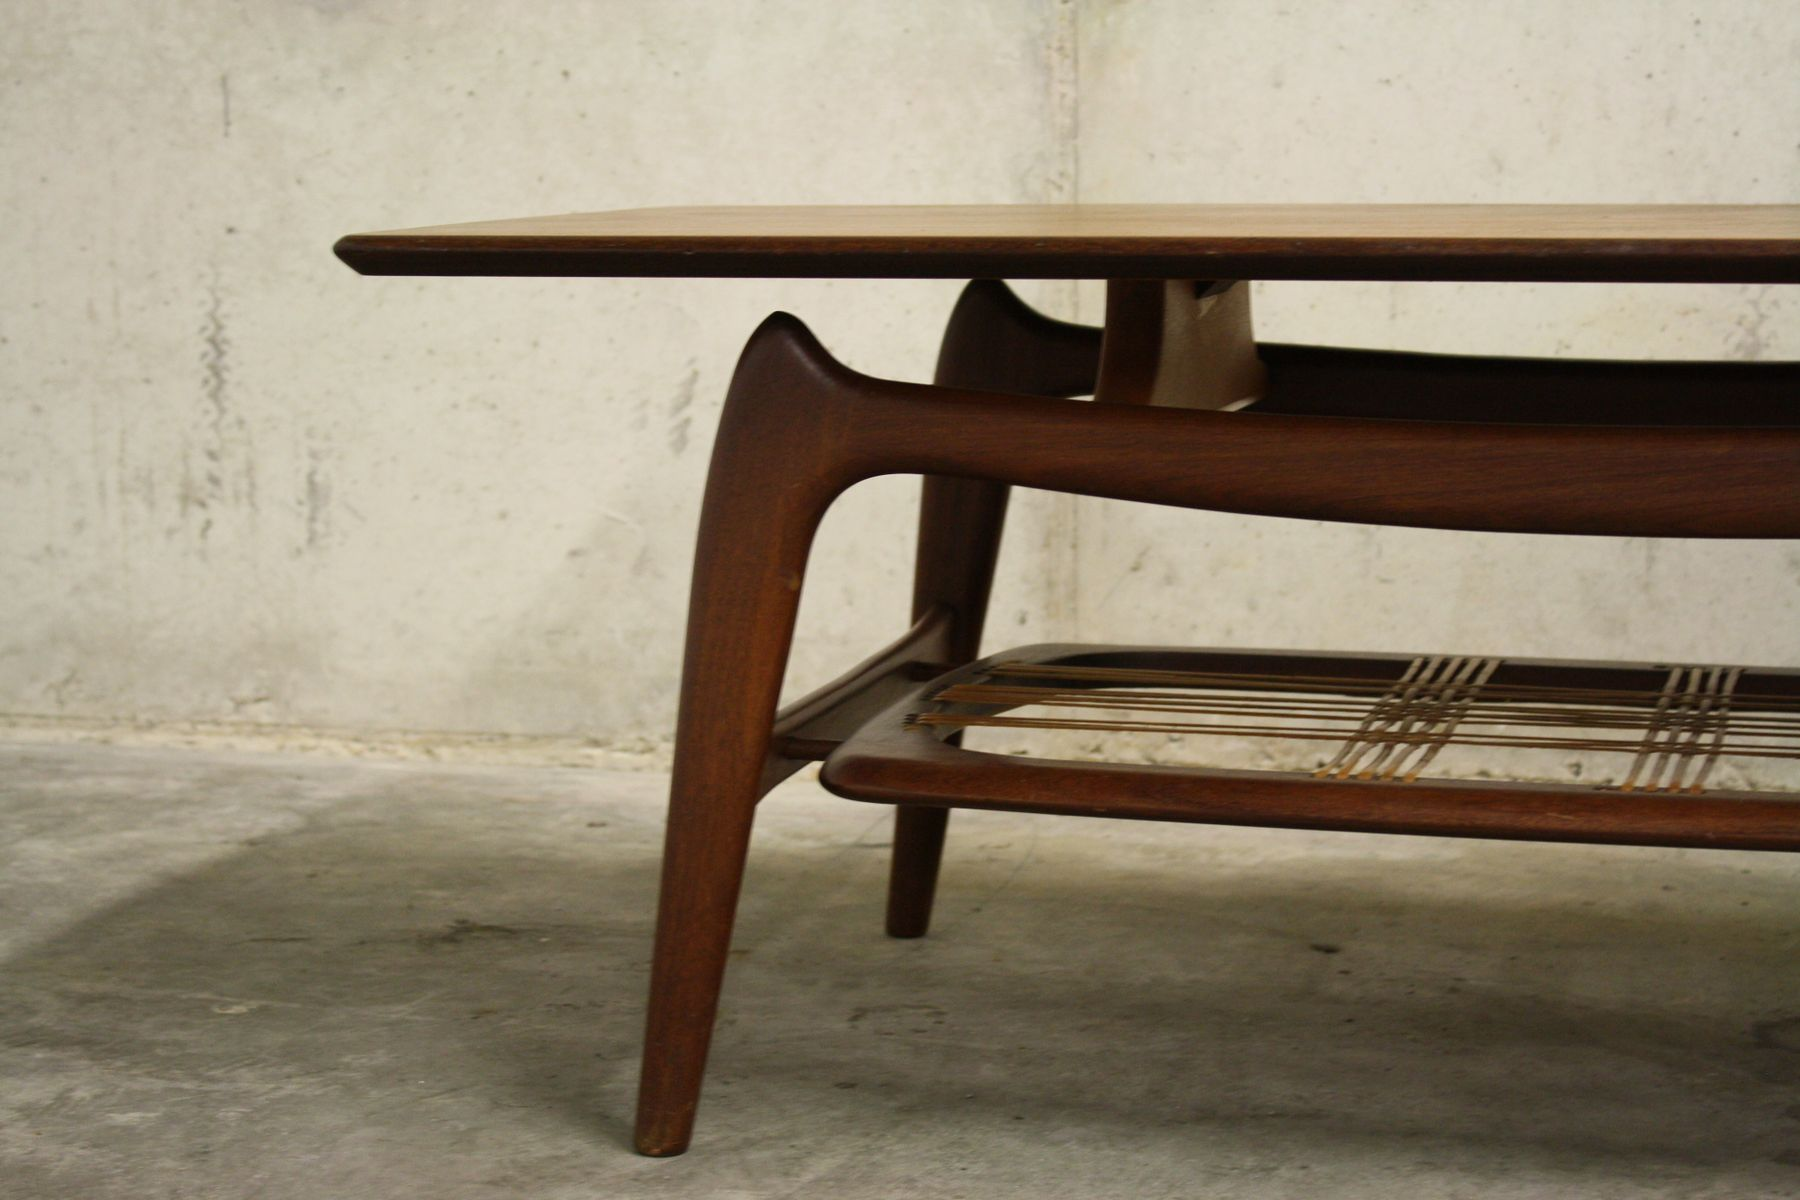 Organic Coffee Table by Louis Van Teeffelen for WéBé 1958 for